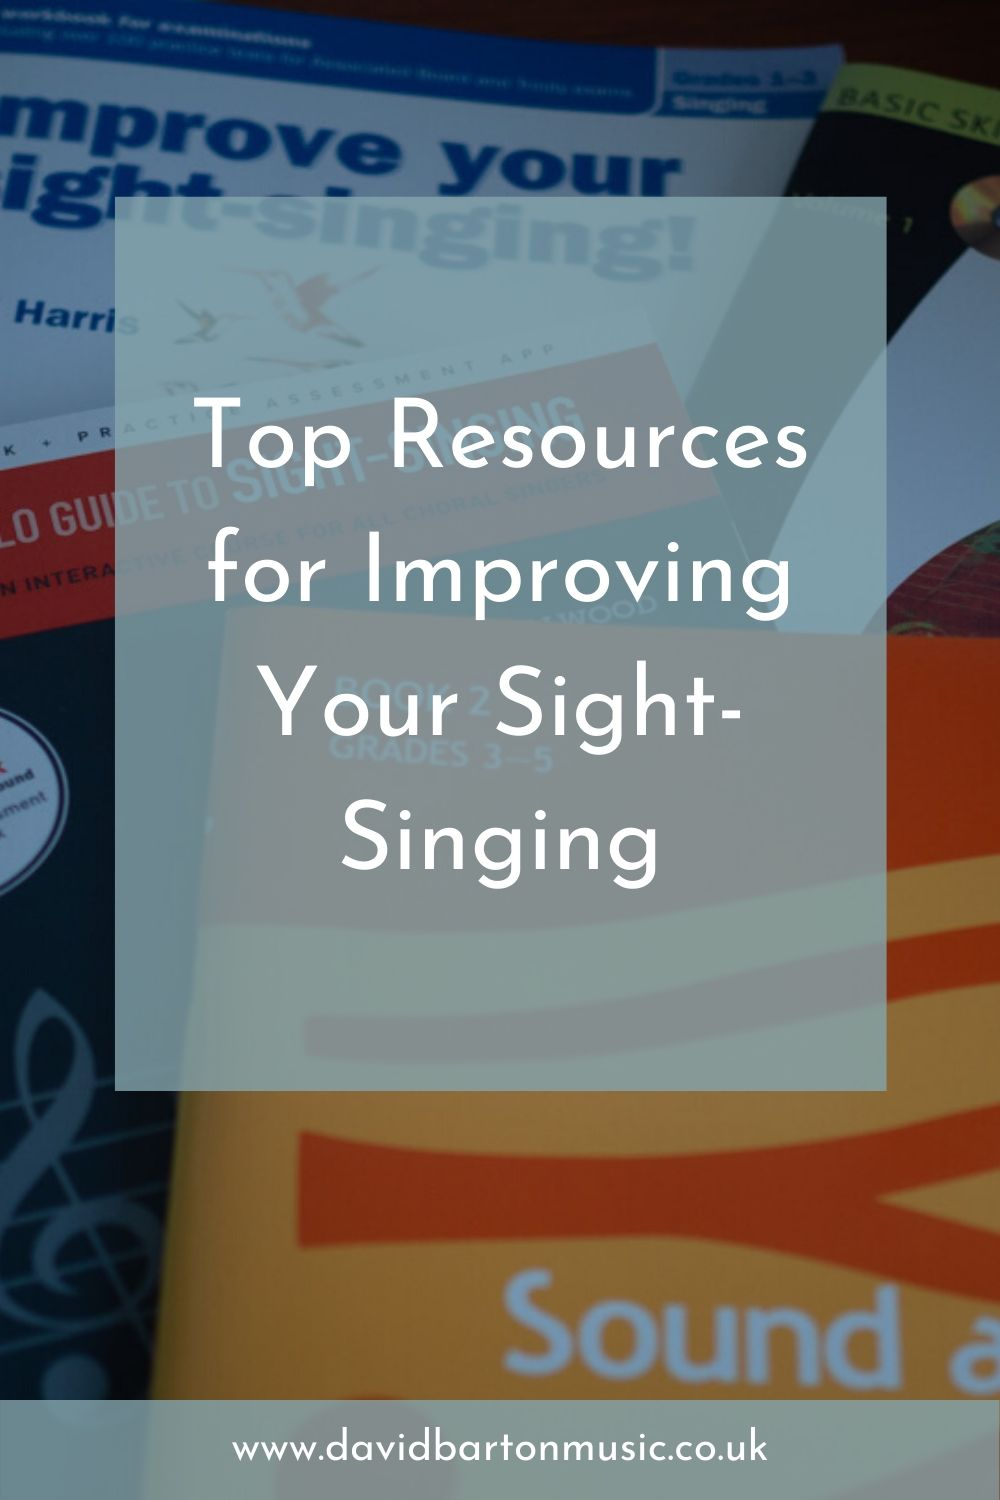 Top Resources for Improving Your Sight-Singing - Pinterest Graphic